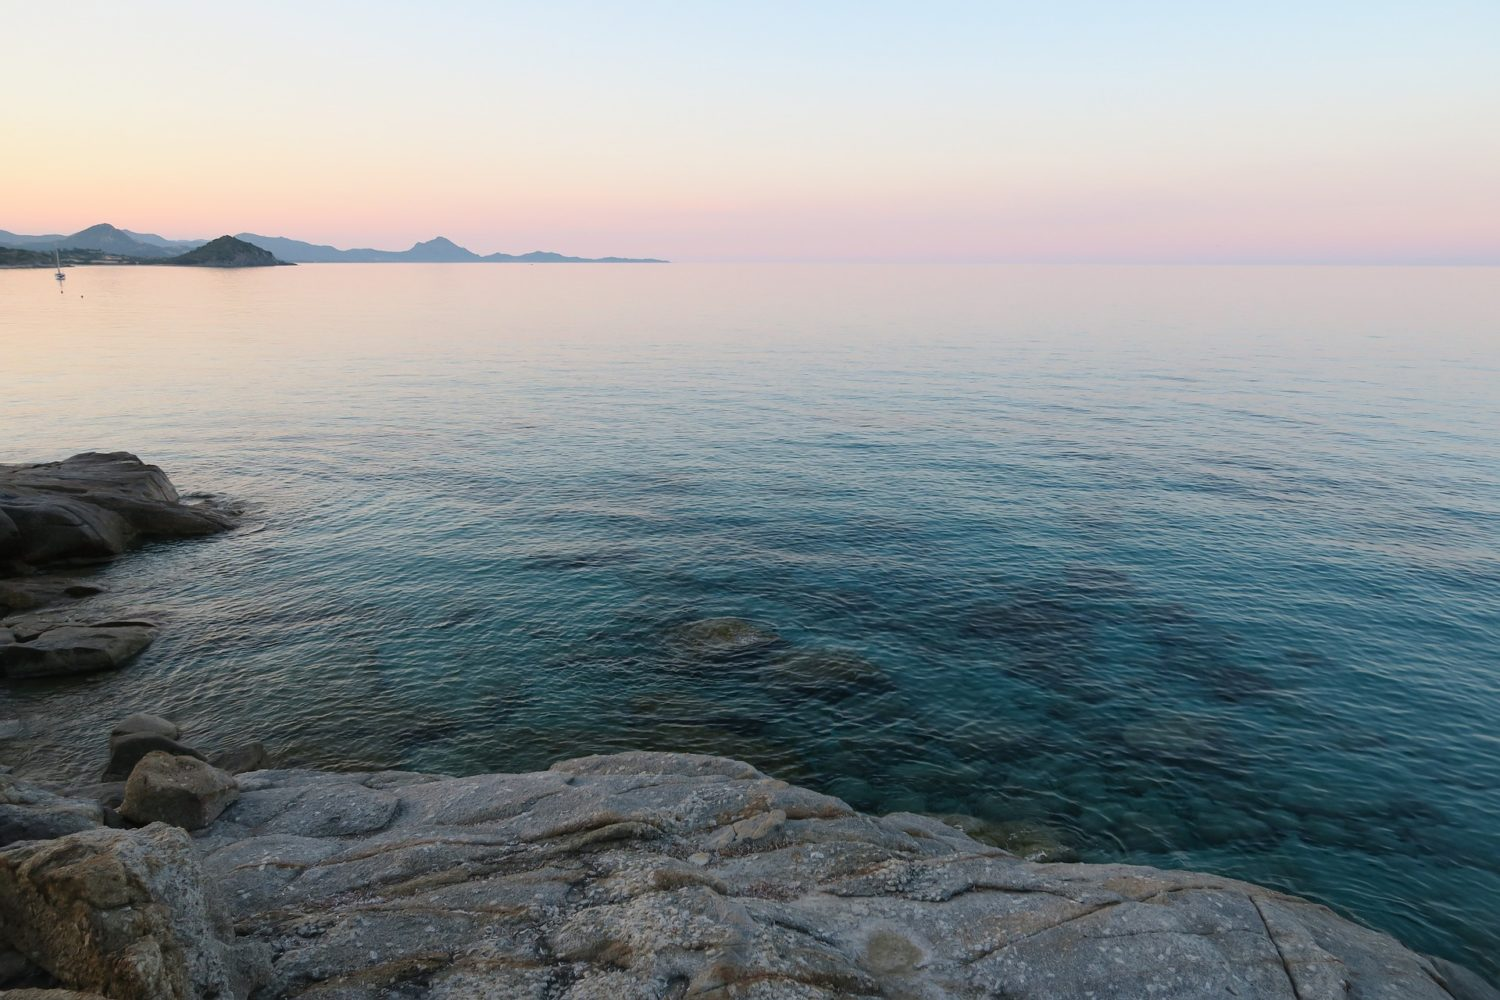 Enjoy a peaceful sunset after the perfect day of cycling in Sardinia